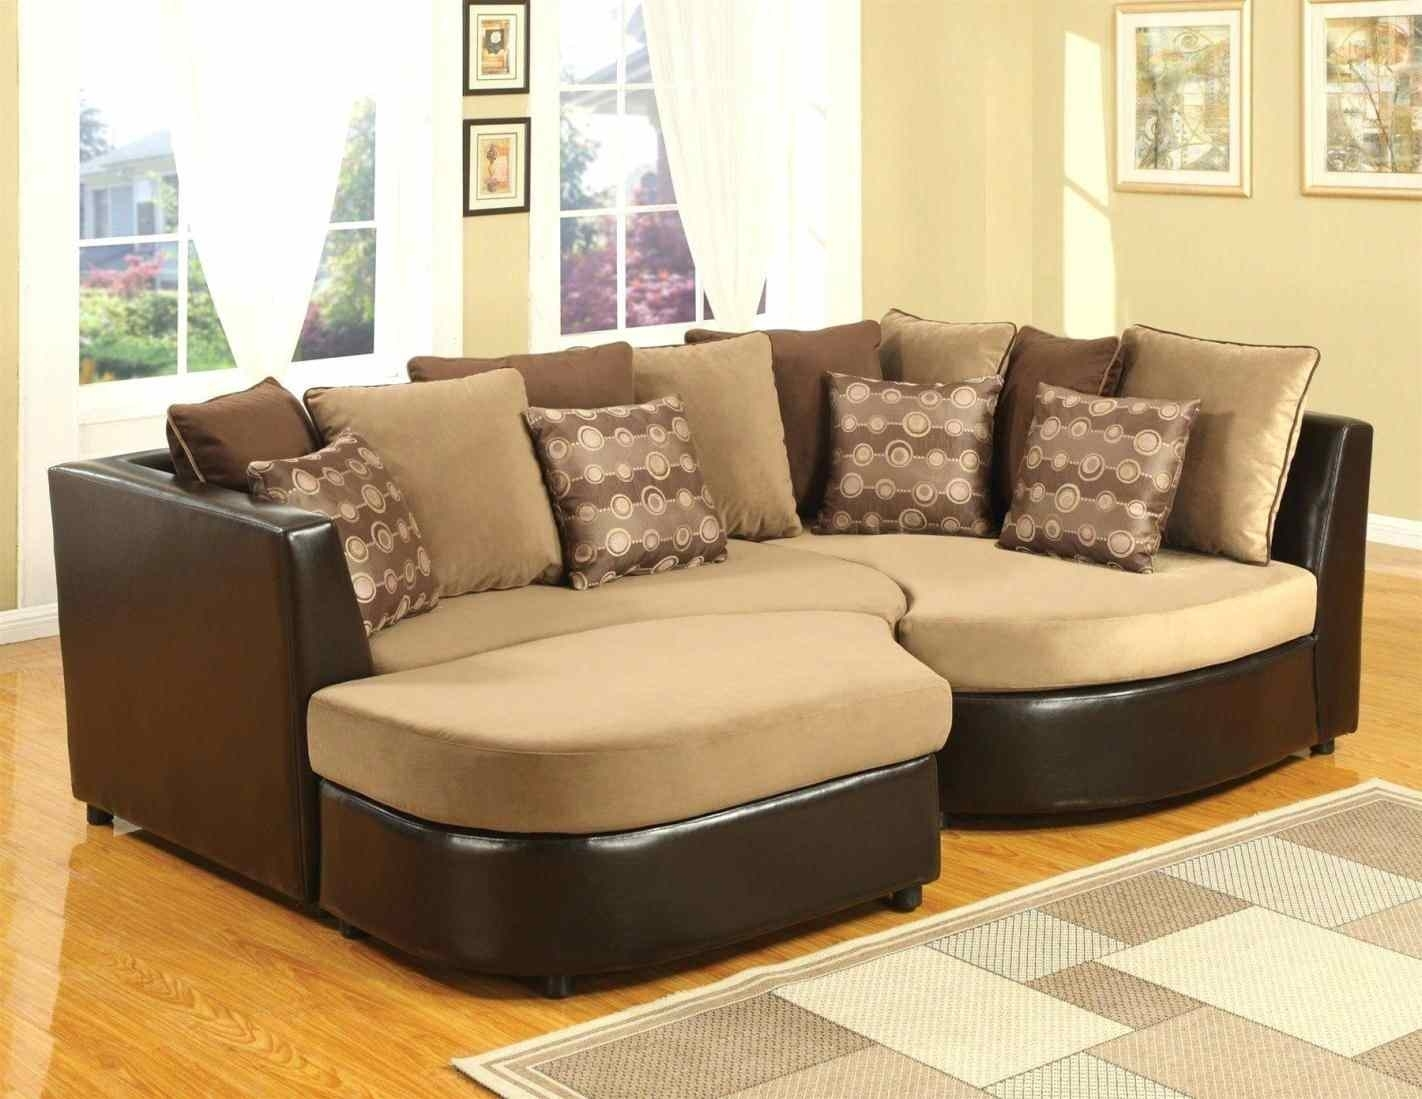 Couch : Furniture Bad Boy Sectional Es Wrap Around Couch Furniture Inside Sectional Sofas At Bad Boy (Image 7 of 10)